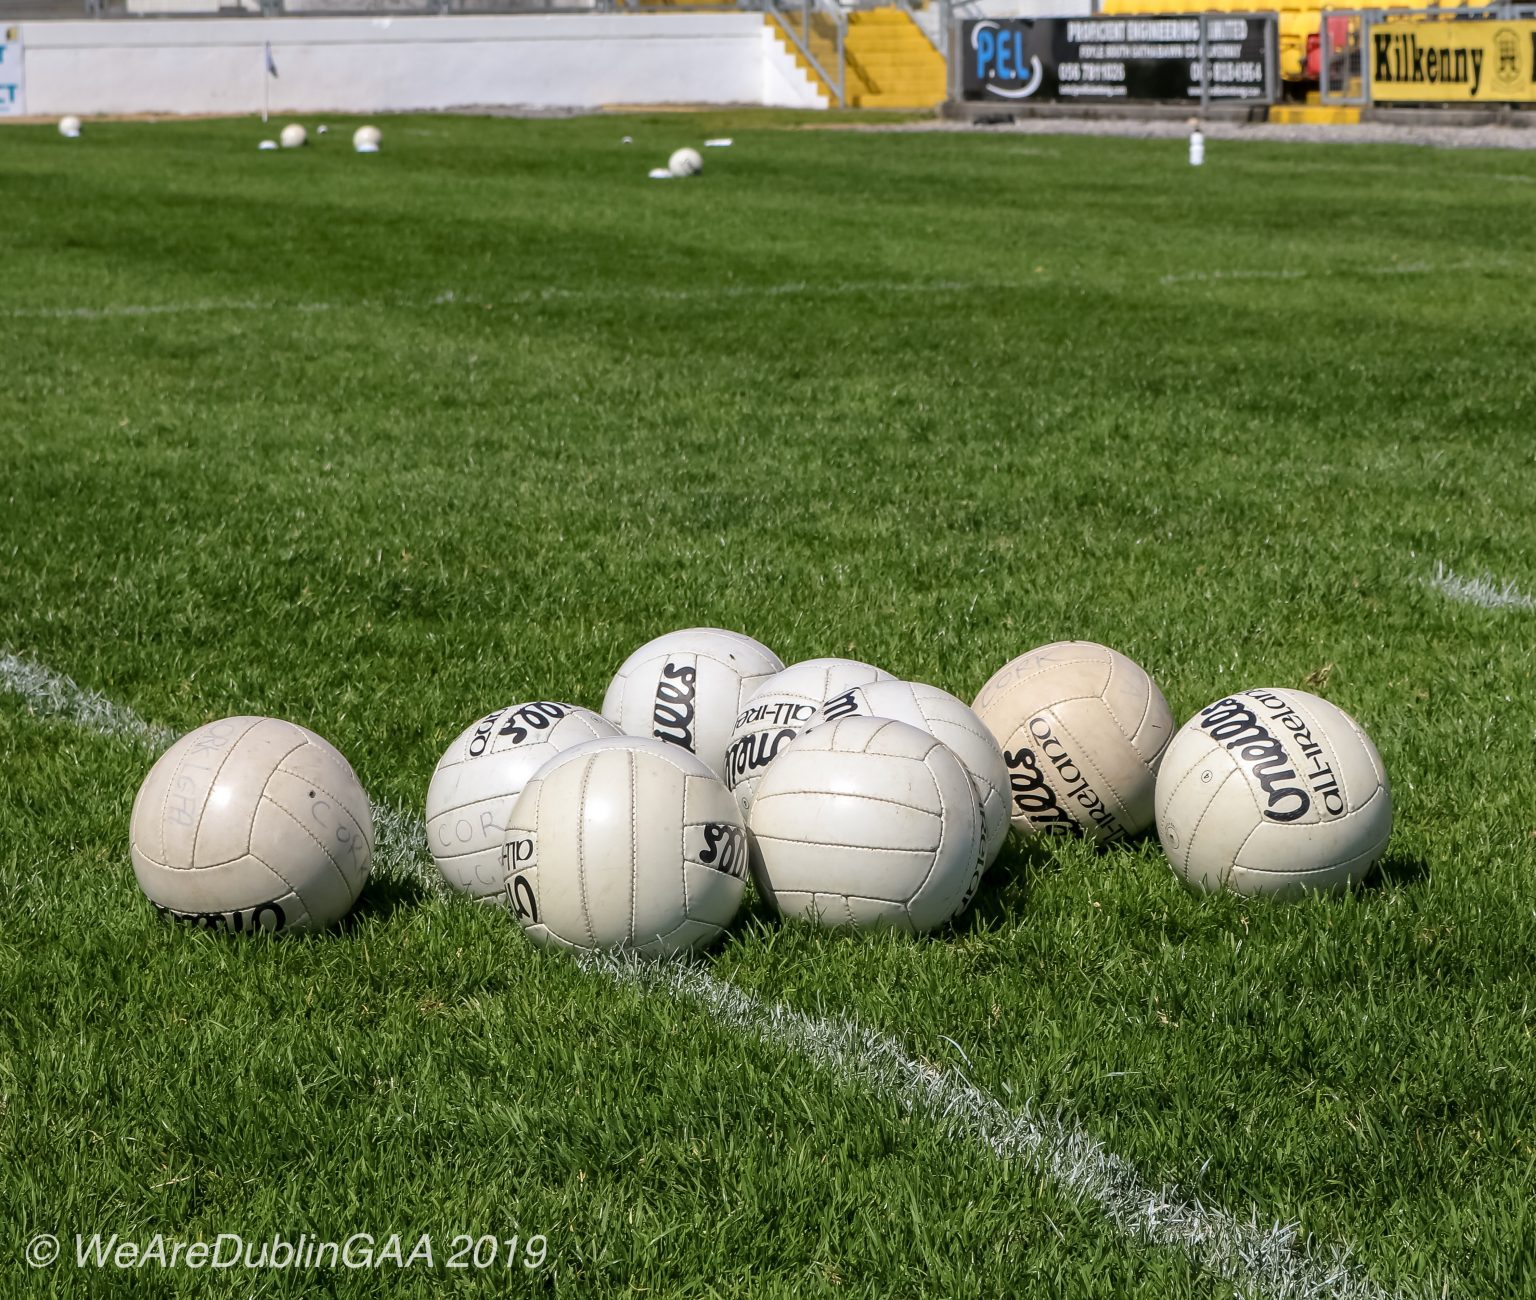 Nine white O'Neills Gaelic footballs on a grass pitch, plenty will be seen on TV during the championship from the games that RTÉ will broadcast live